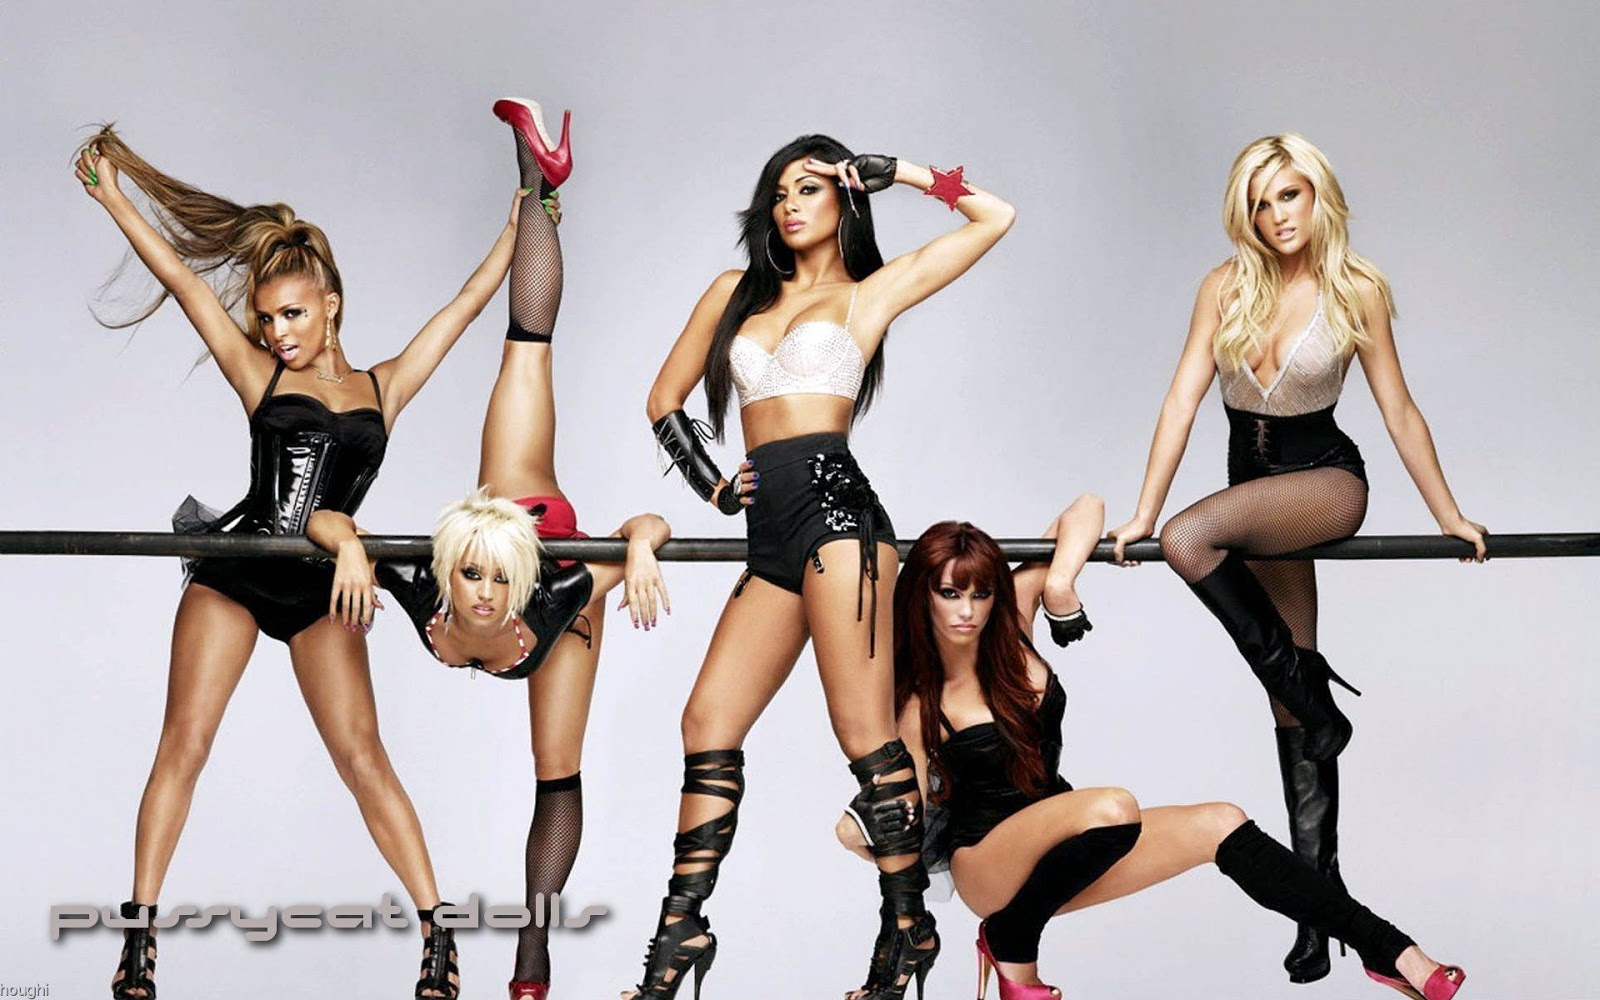 Information about Pussycat Dolls